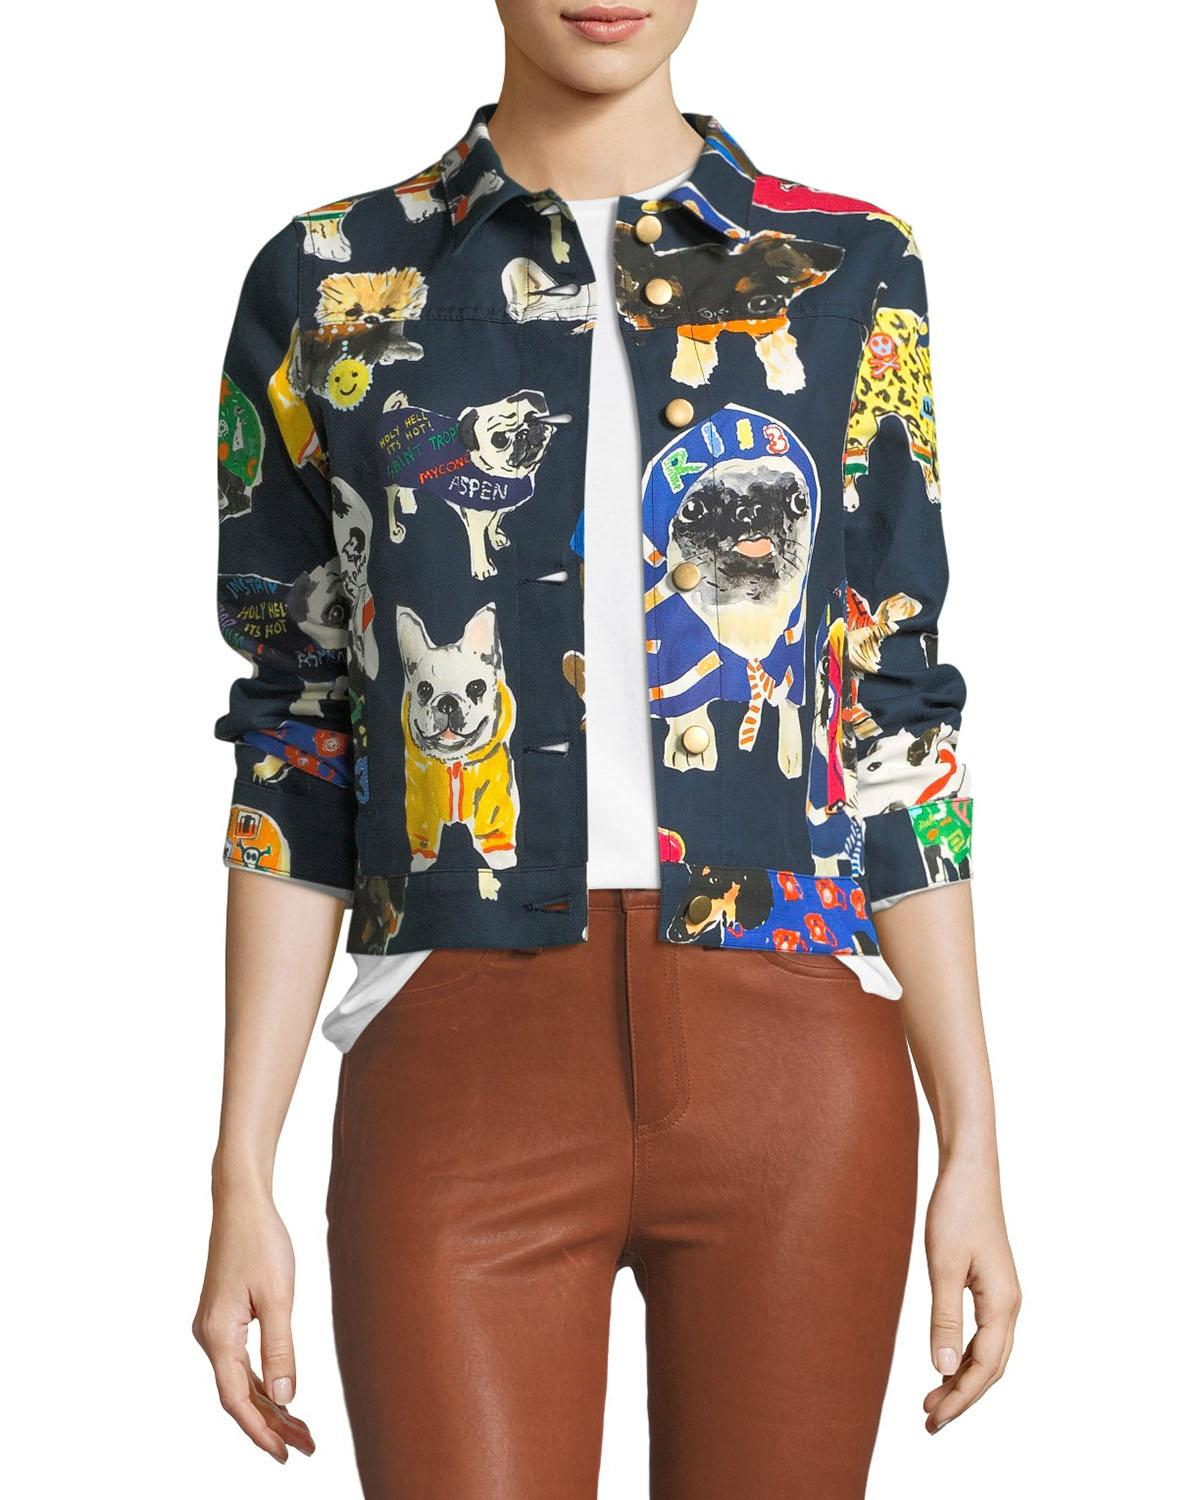 Play with your clothes like you do with your dogs in this colorful dog print jacket featuring various pooches in fun dog clothes. Throw over your work clothes for an easy transition from professional to playful. Find it exclusively at Neiman Marcus.{ } (Image: Courtesy Neiman Marcus)